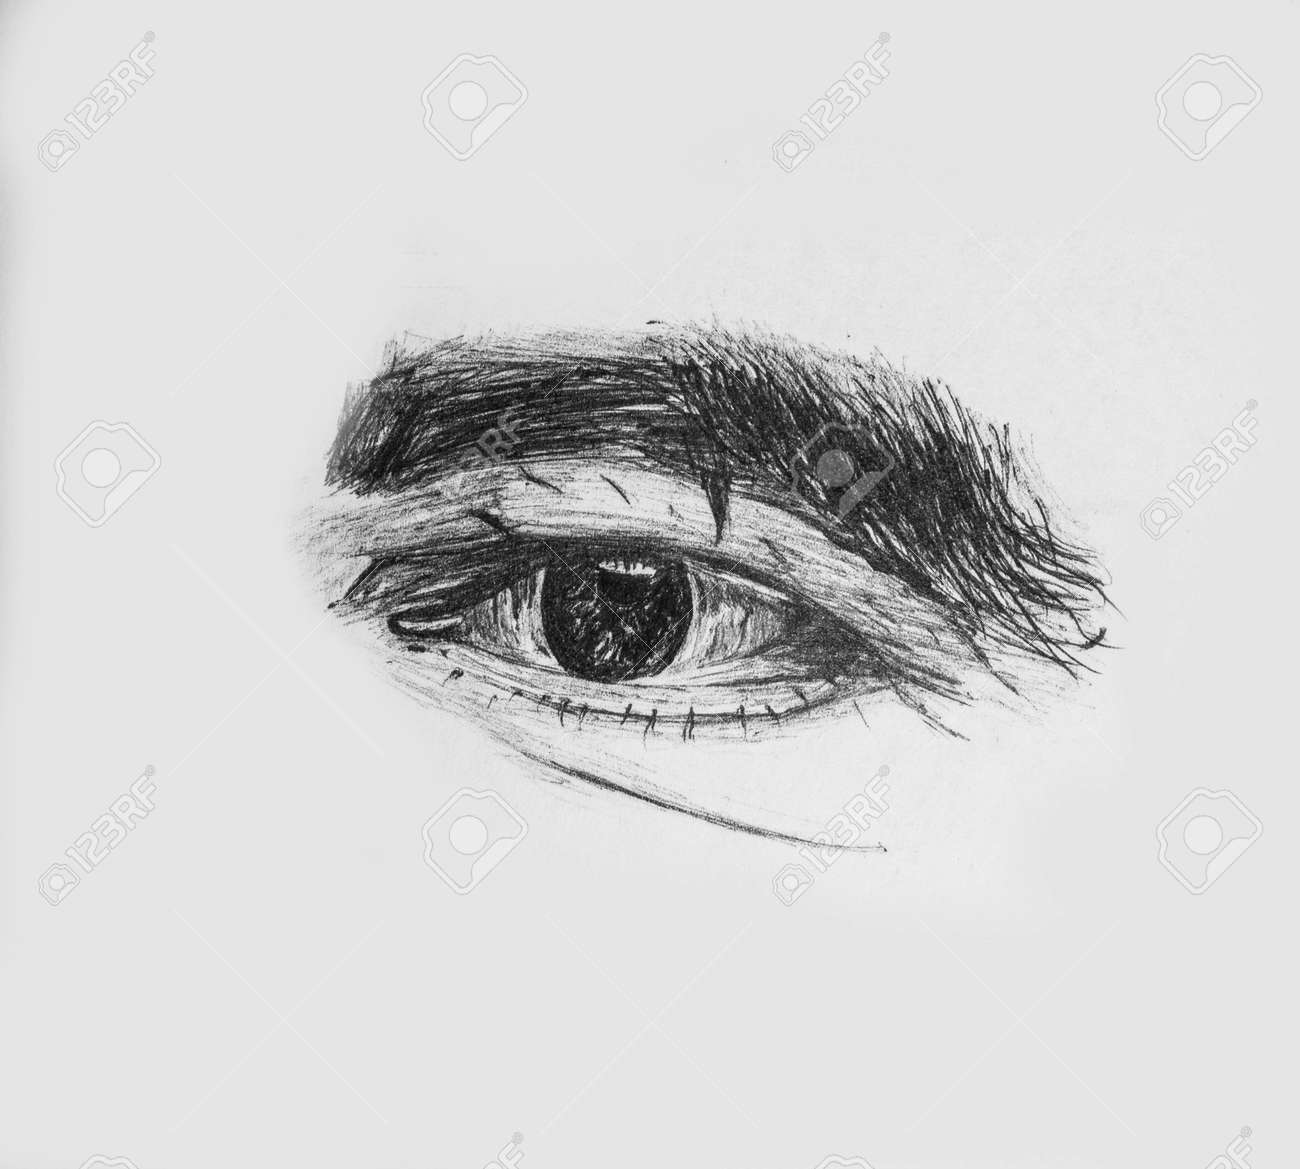 Hand Drawn Human Eye Of A Old Man With Thick Eyebrows Detailed